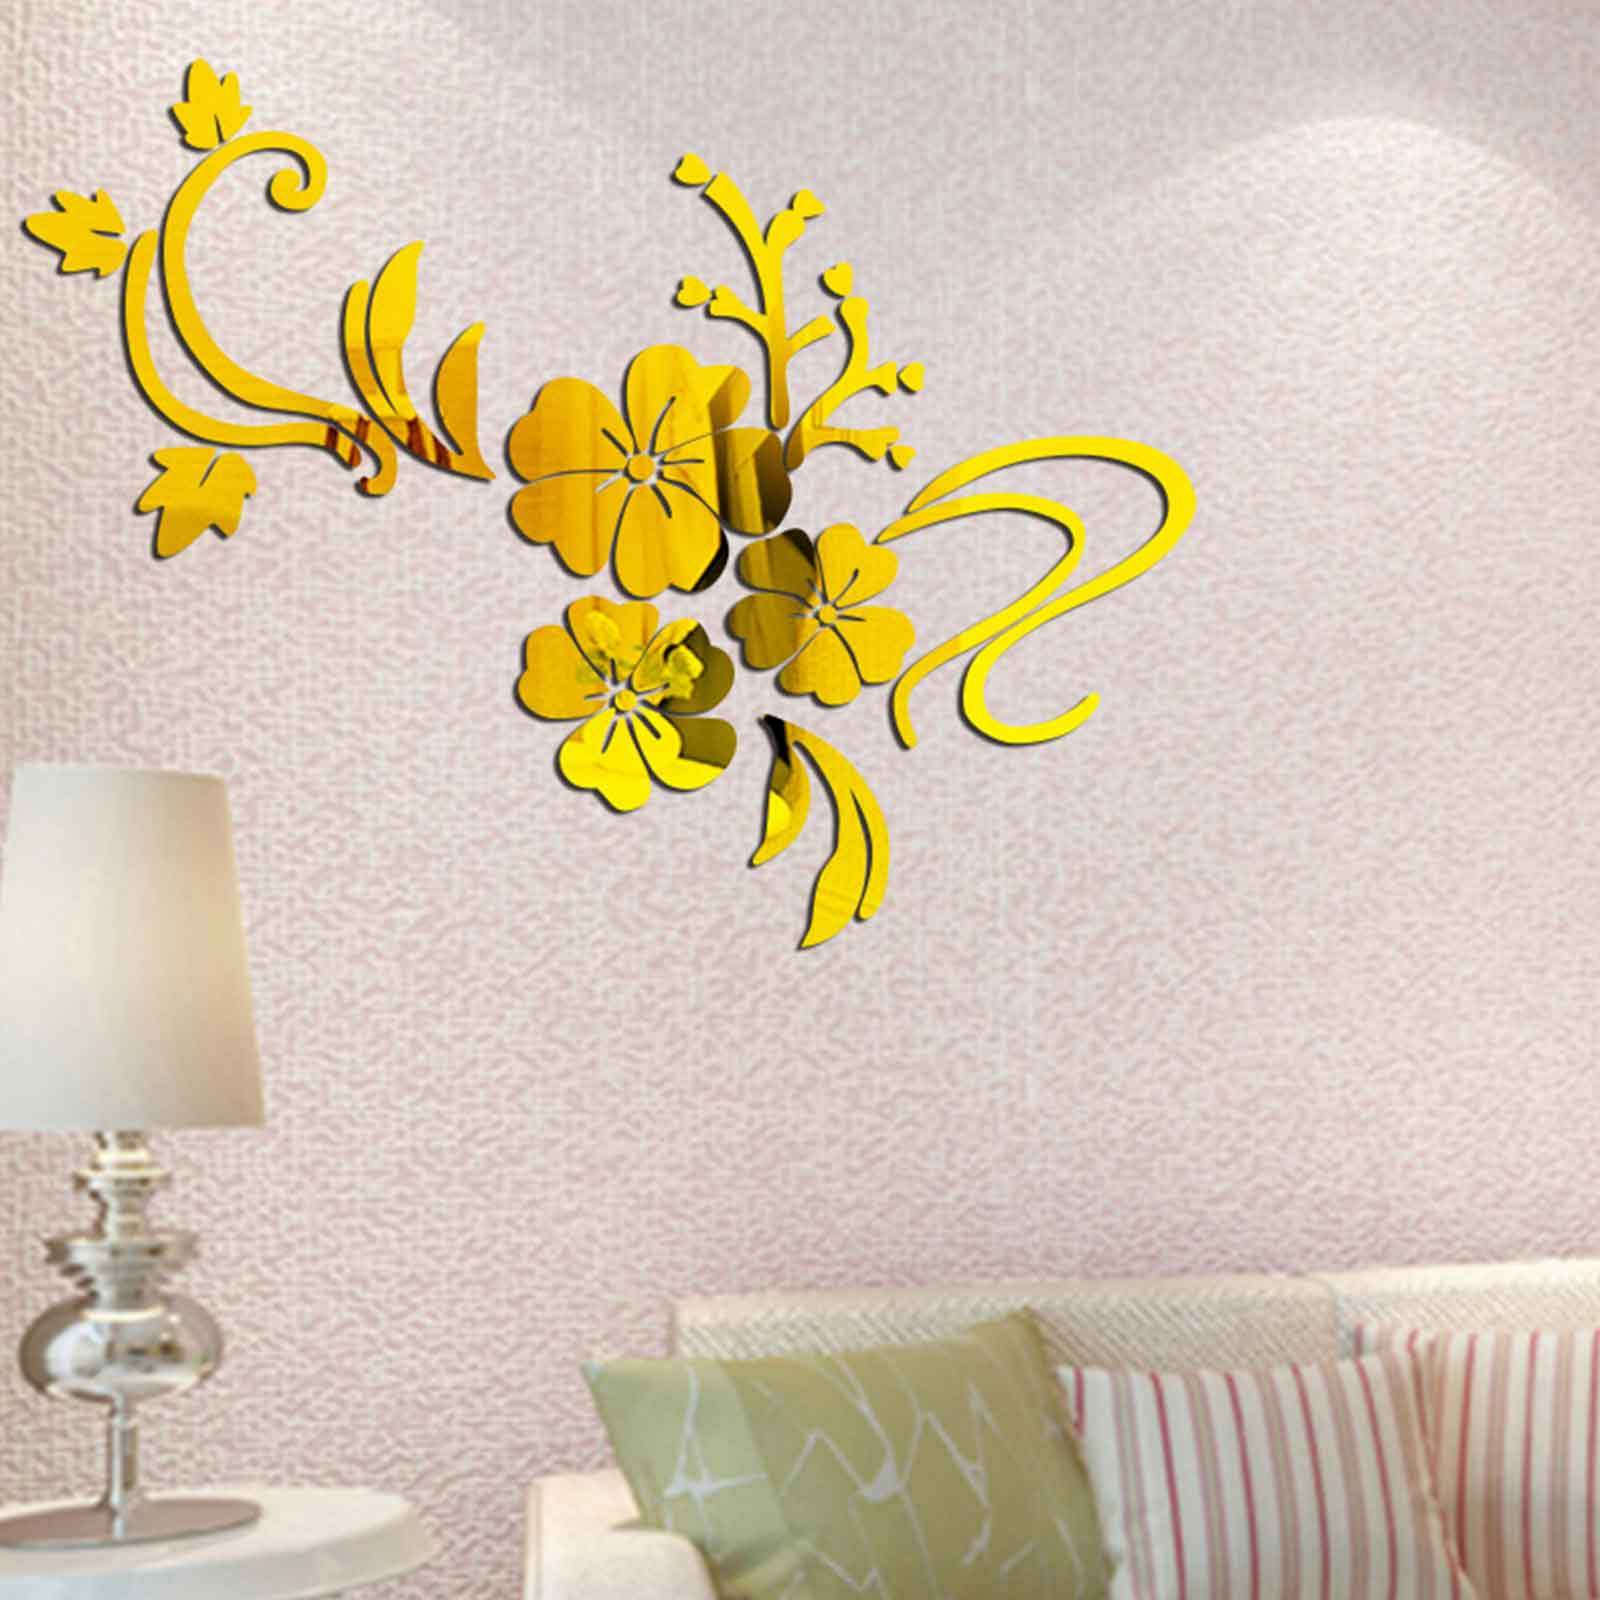 Vine Flower Acrylic Wall Art Stickers, Wall Decals, Wall Graphics ...